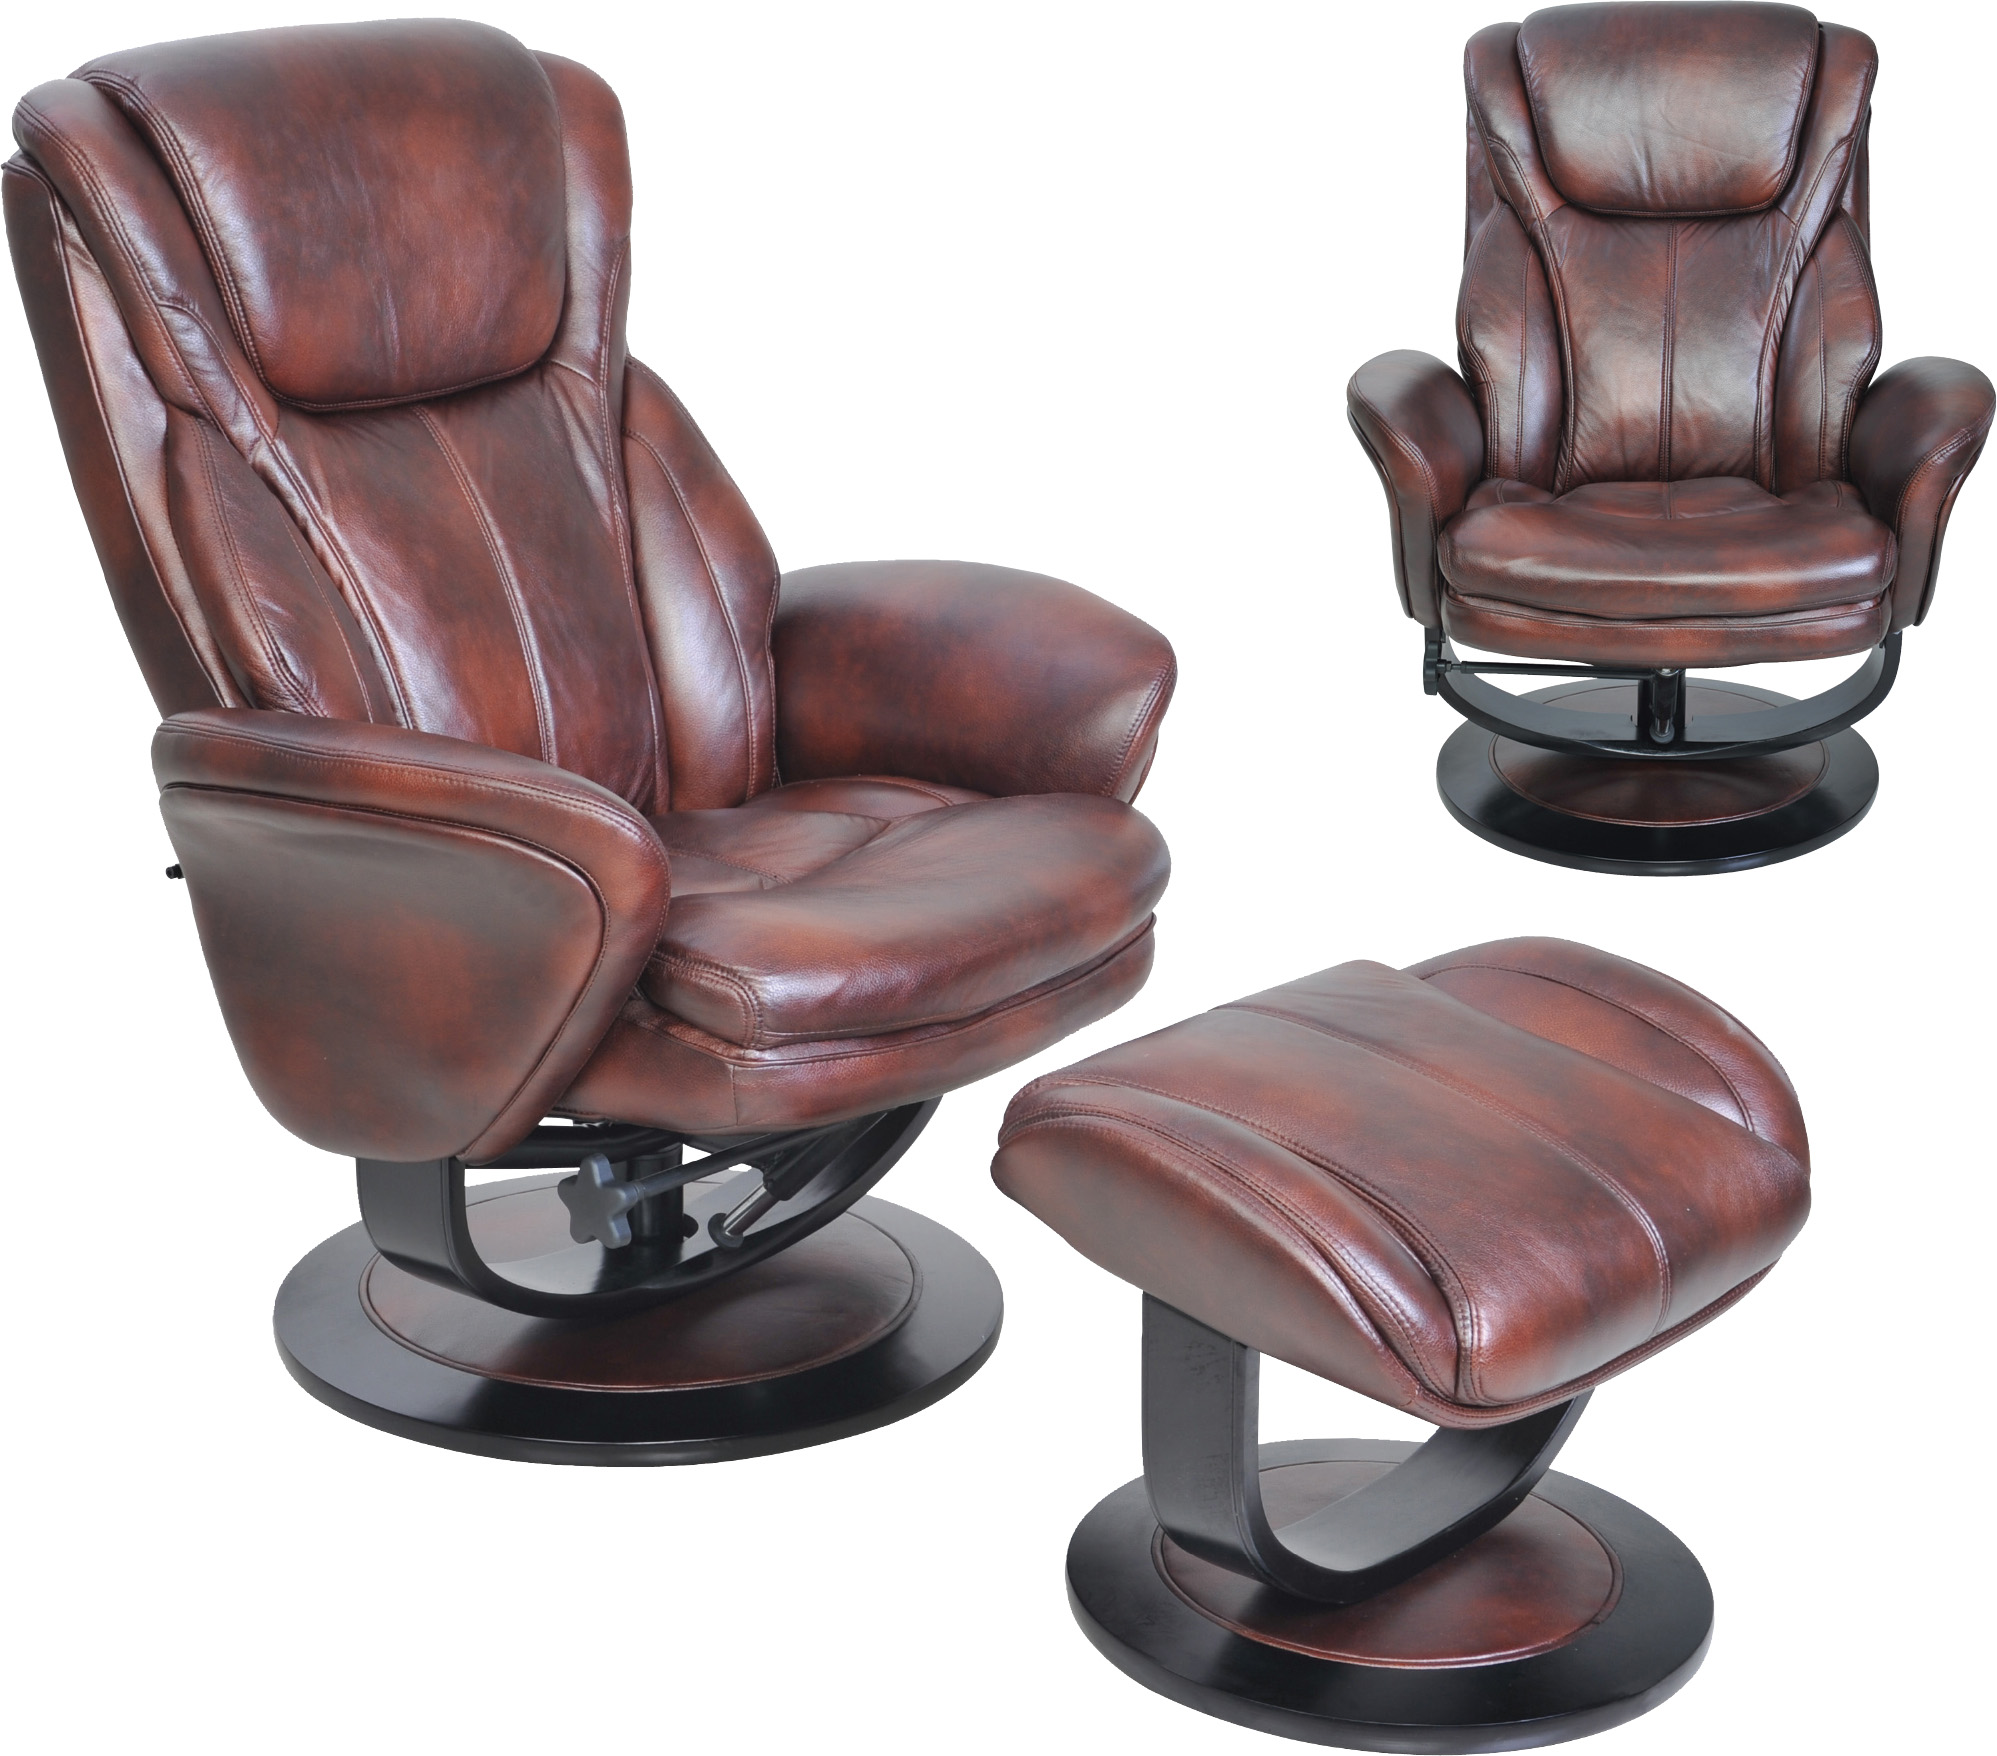 Barcalounger roma ii recliner chair and ottoman leather for Barcalounger